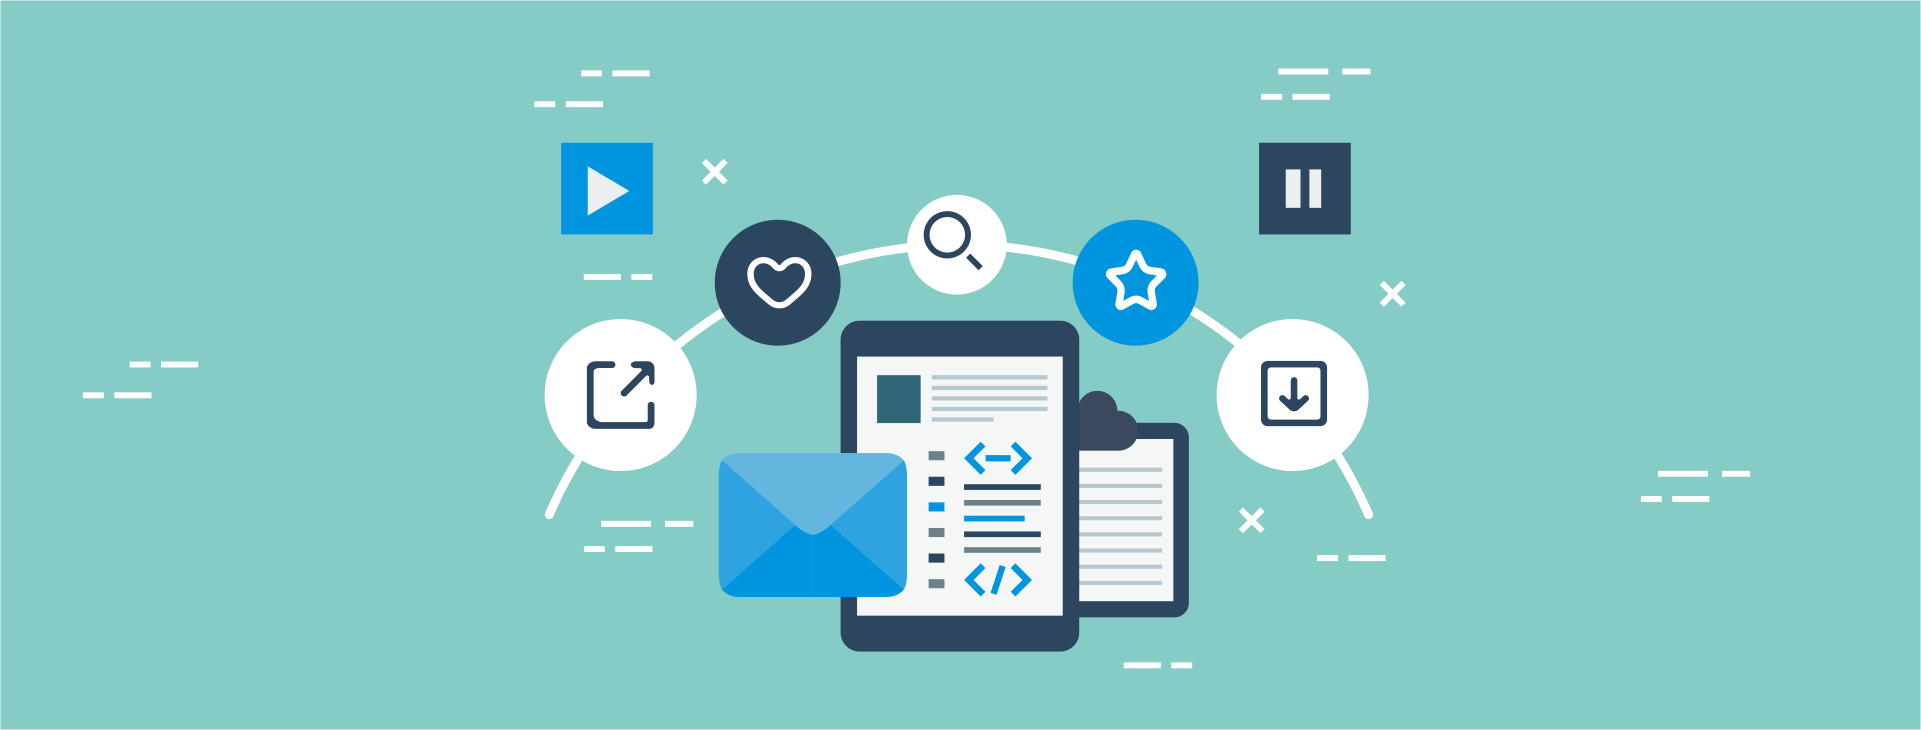 Learn How Social Reputation Management Can Help Your Business With Good Reviews Online